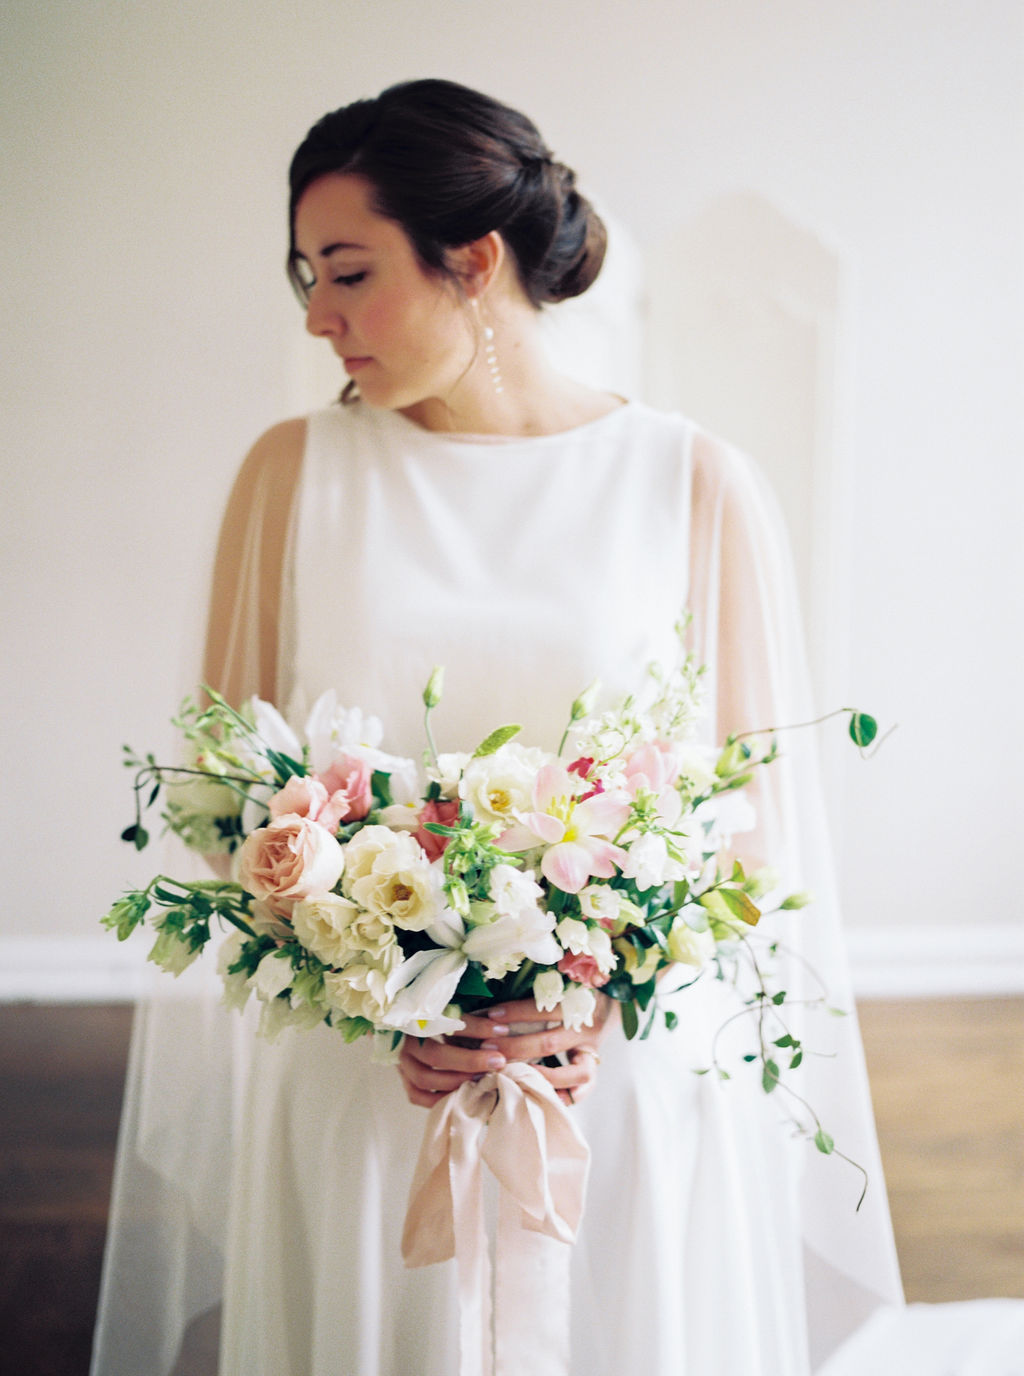 Modern Wedding Gown with Cape and Florals